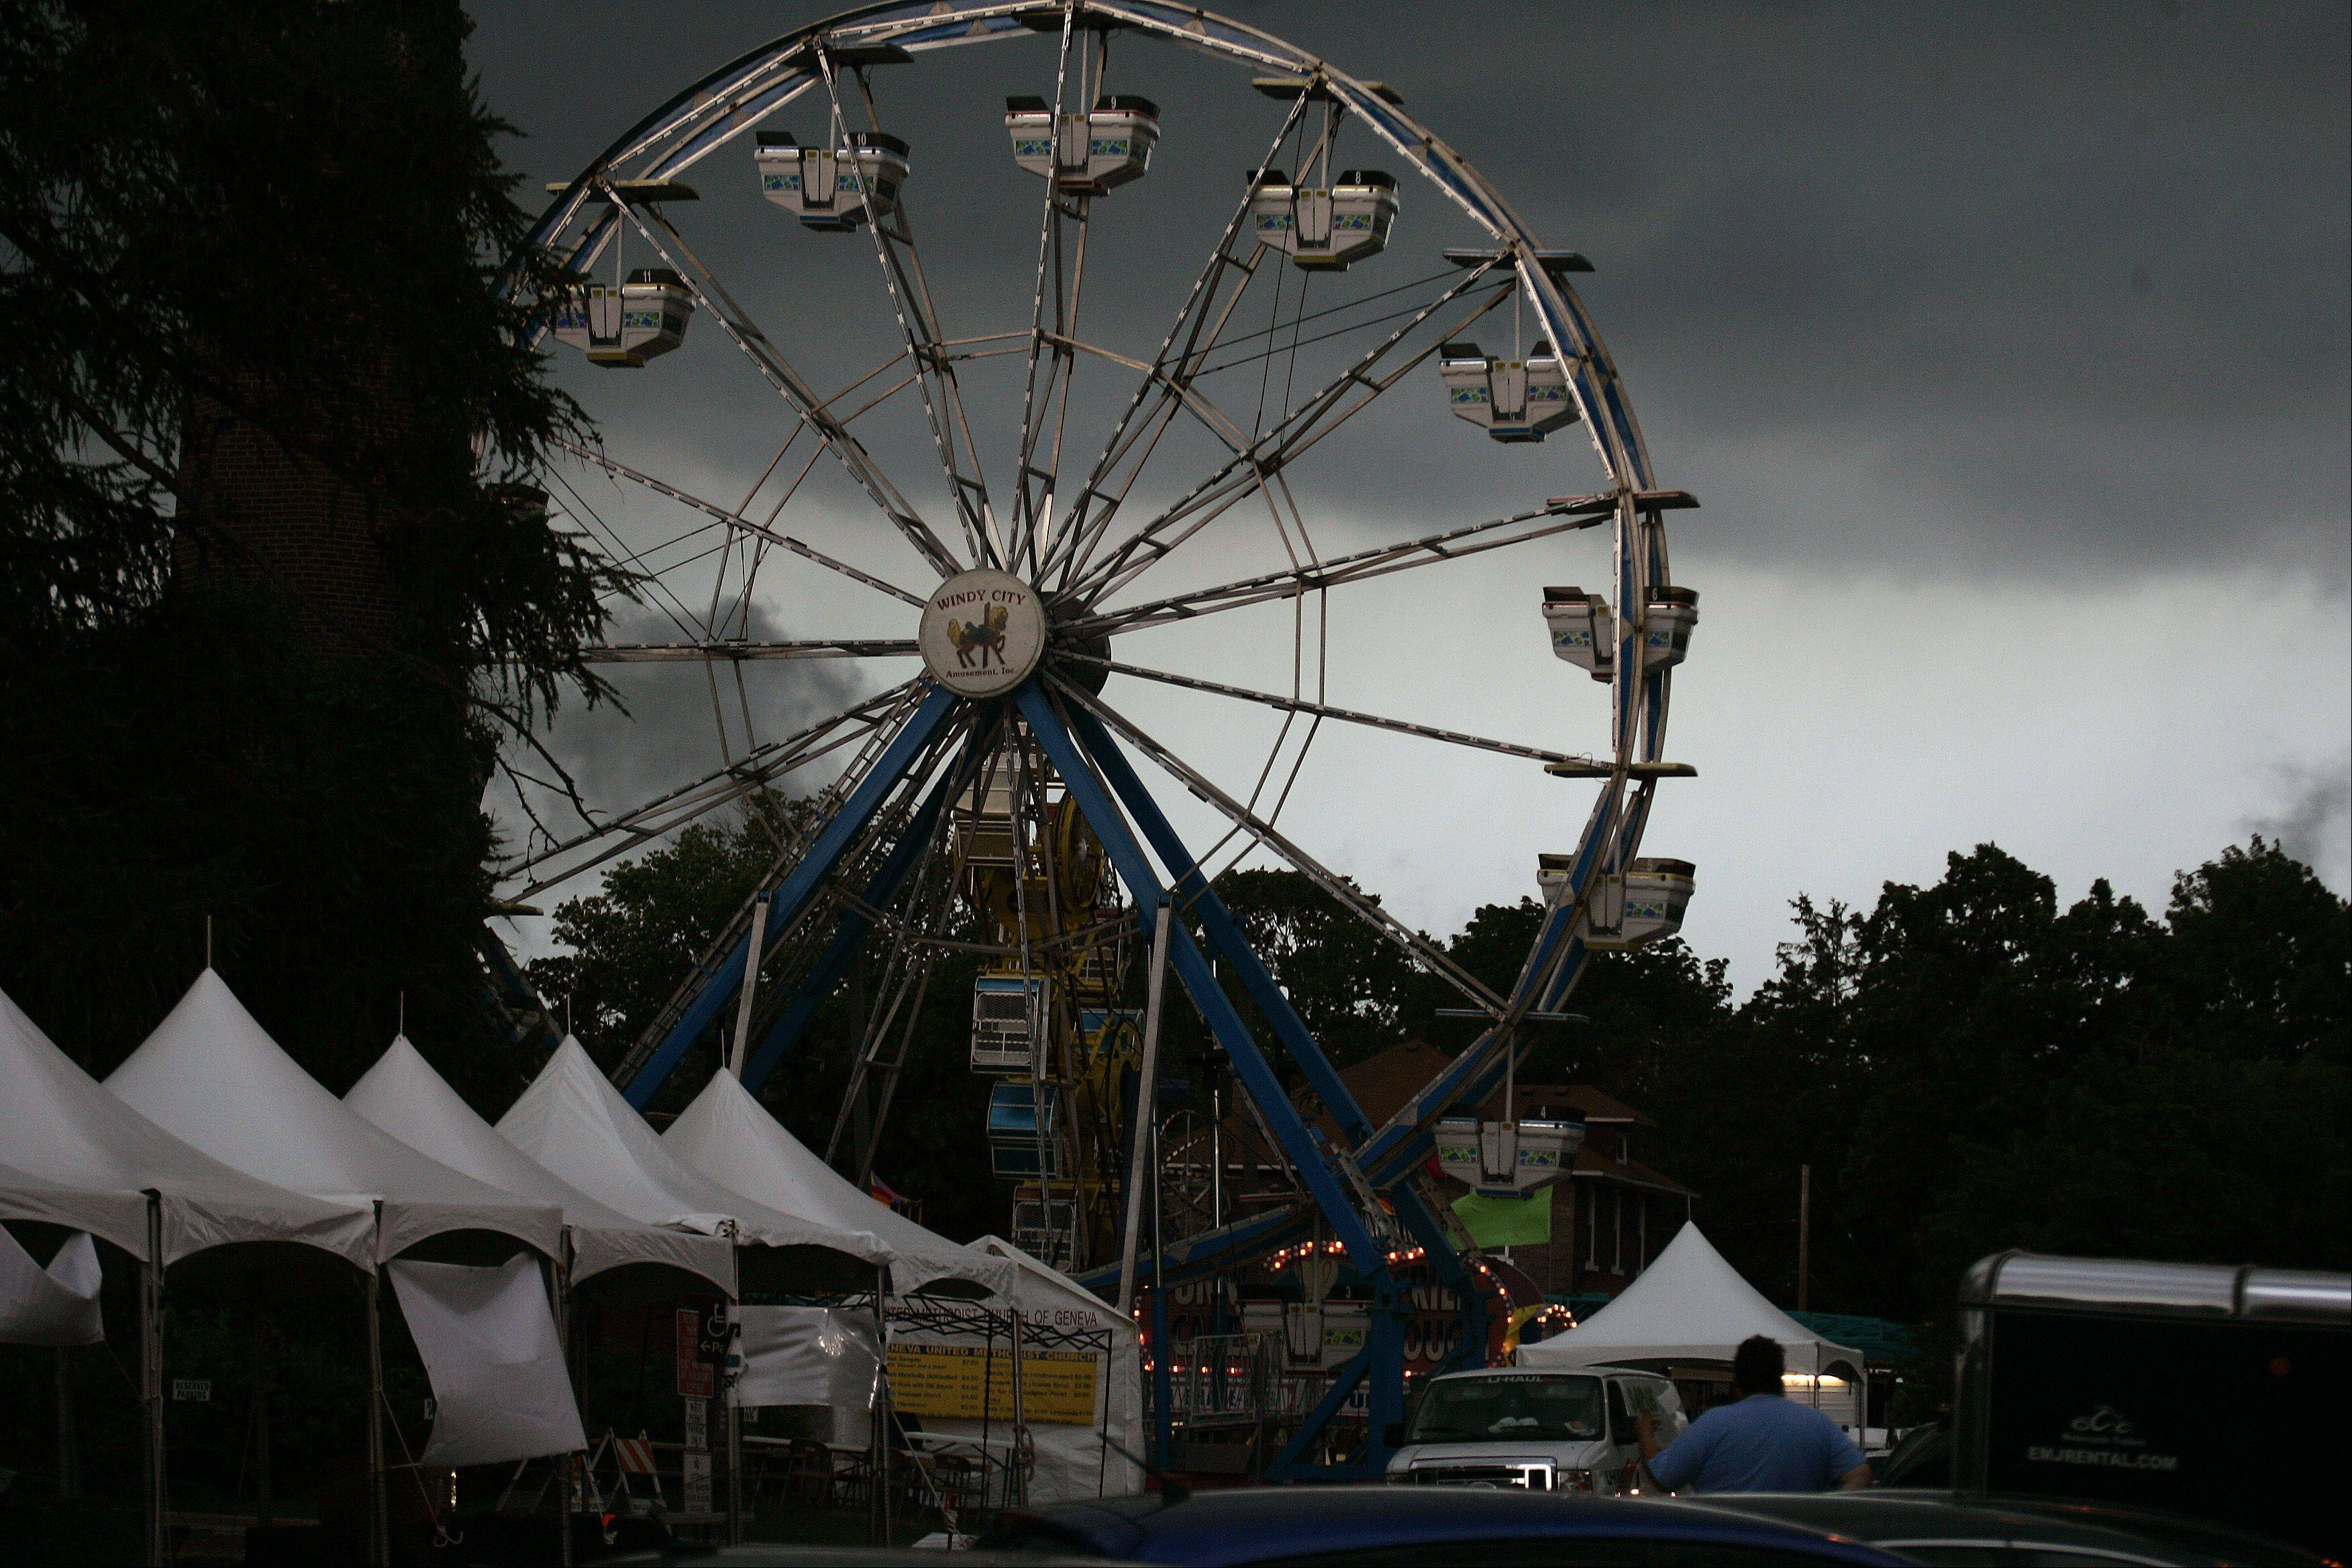 Storms roll into Geneva Friday causing the Swedish Days festival to be shut down temporarily.